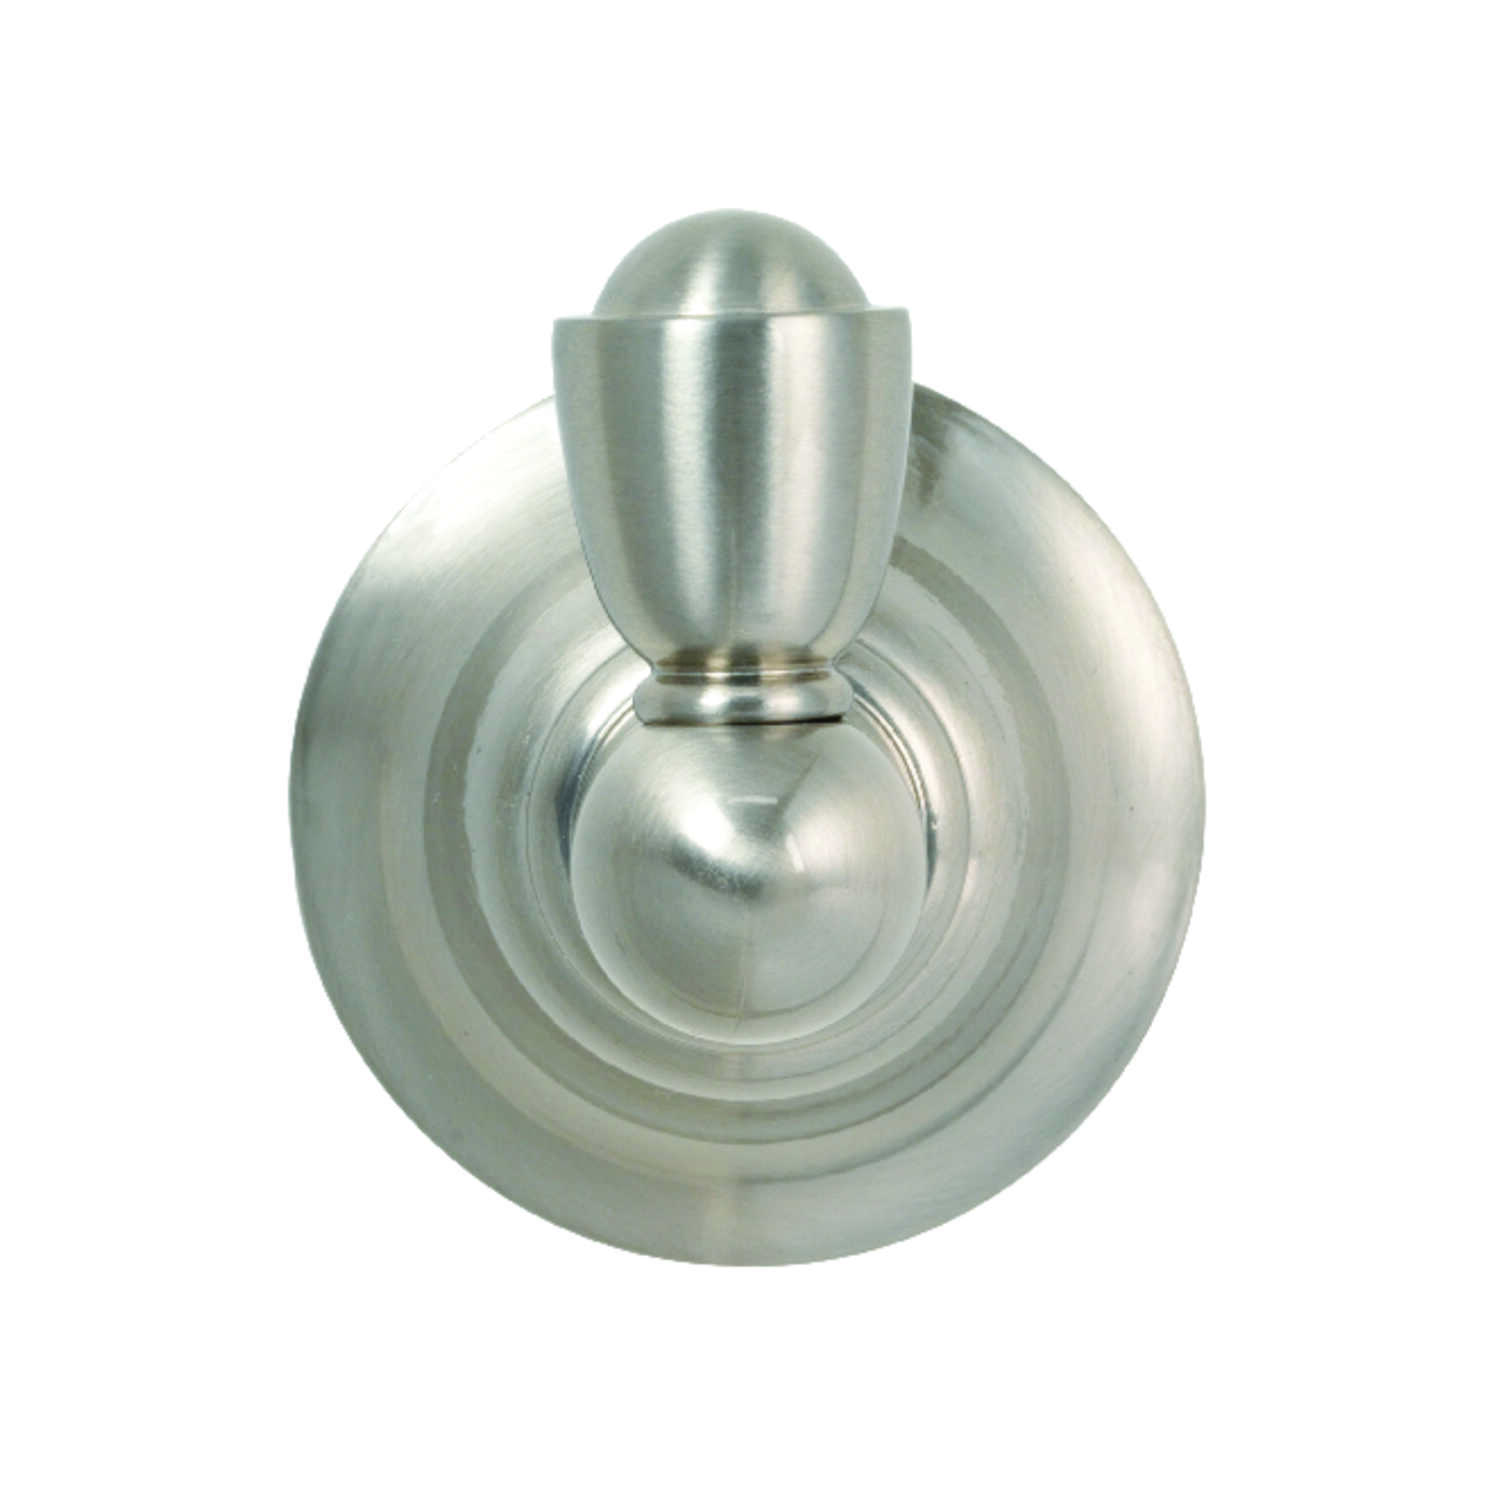 Moen  Sage  Robe Hook  2.6 in. W x 2.8 in. H Brushed Nickel